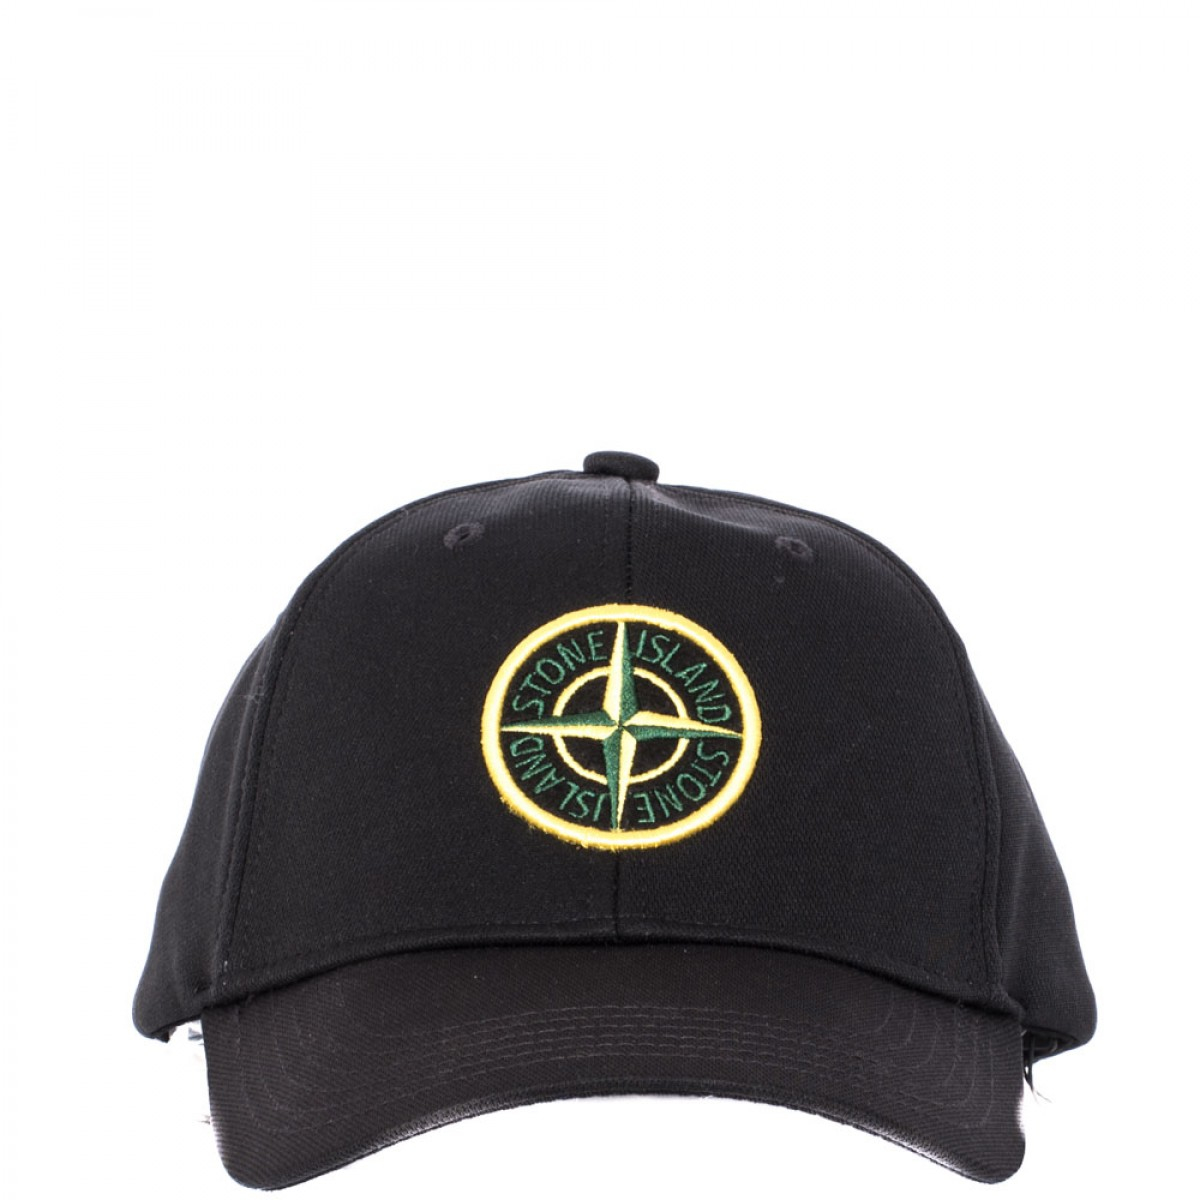 where can i buy stone island in london